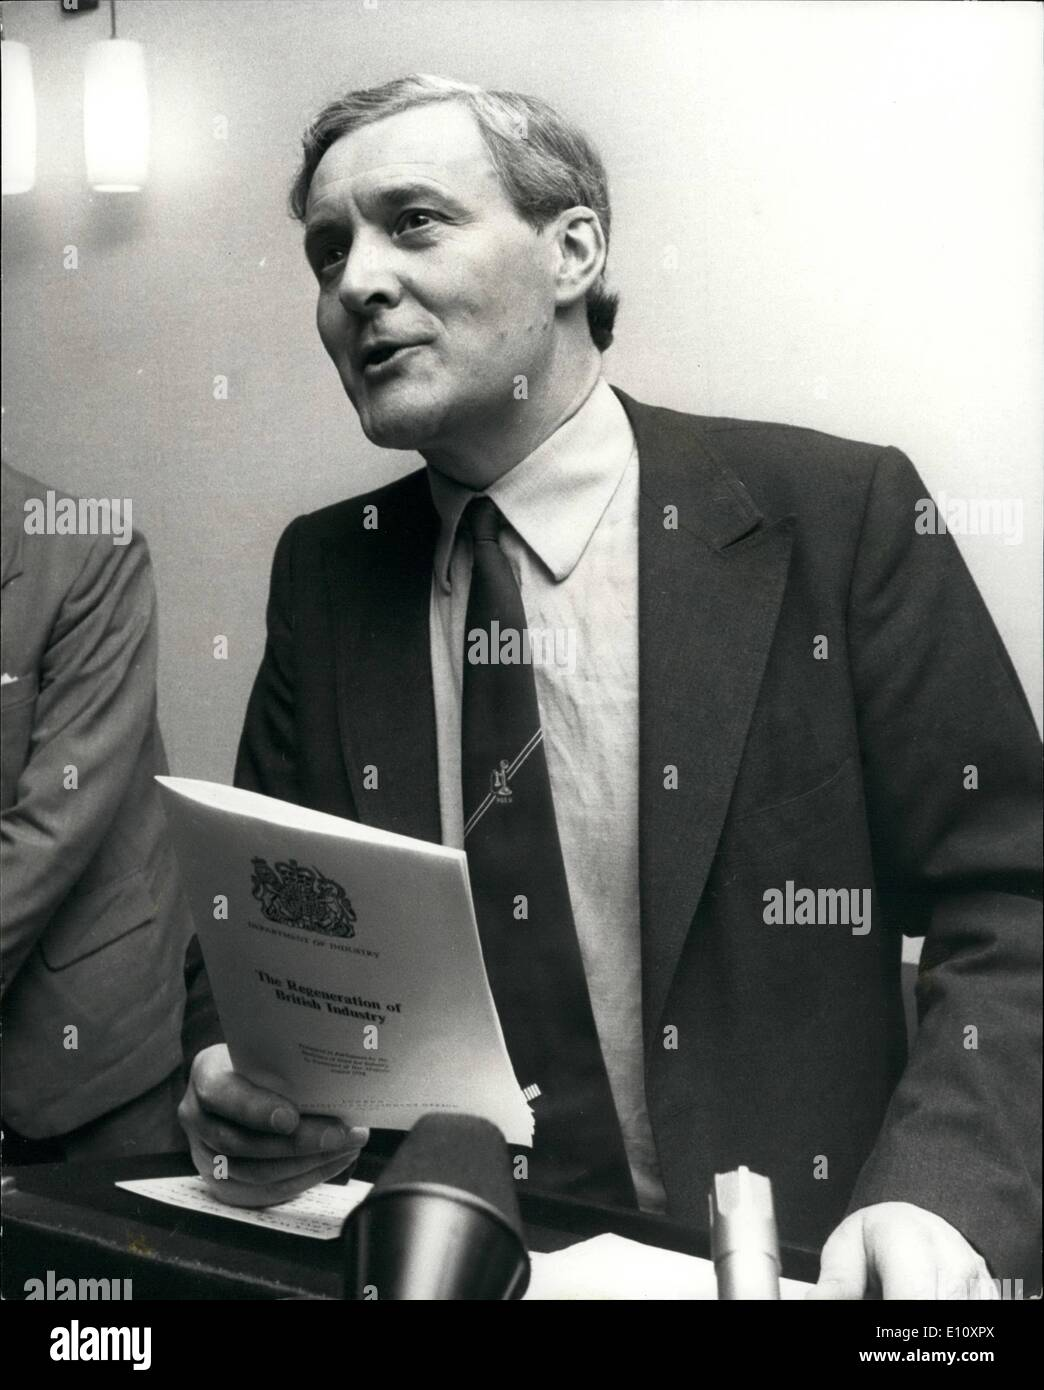 Aug. 08, 1974 - Mr. Tony Benn reveals the regeneration of British Industry at Press Conference; Mr. Tony Benn the Secretary of State for Industry stated labours place for the extending Nationalization at a press conference today. It is called ''The Regeneration of British Industry'' which proposes a system of three year planning agreements with major firms in key sectors of Industry, and the setting up of a National Enterprise Board to extend and supervise the government's stakes in private enterprise. Photo Shows Mr - Stock Image